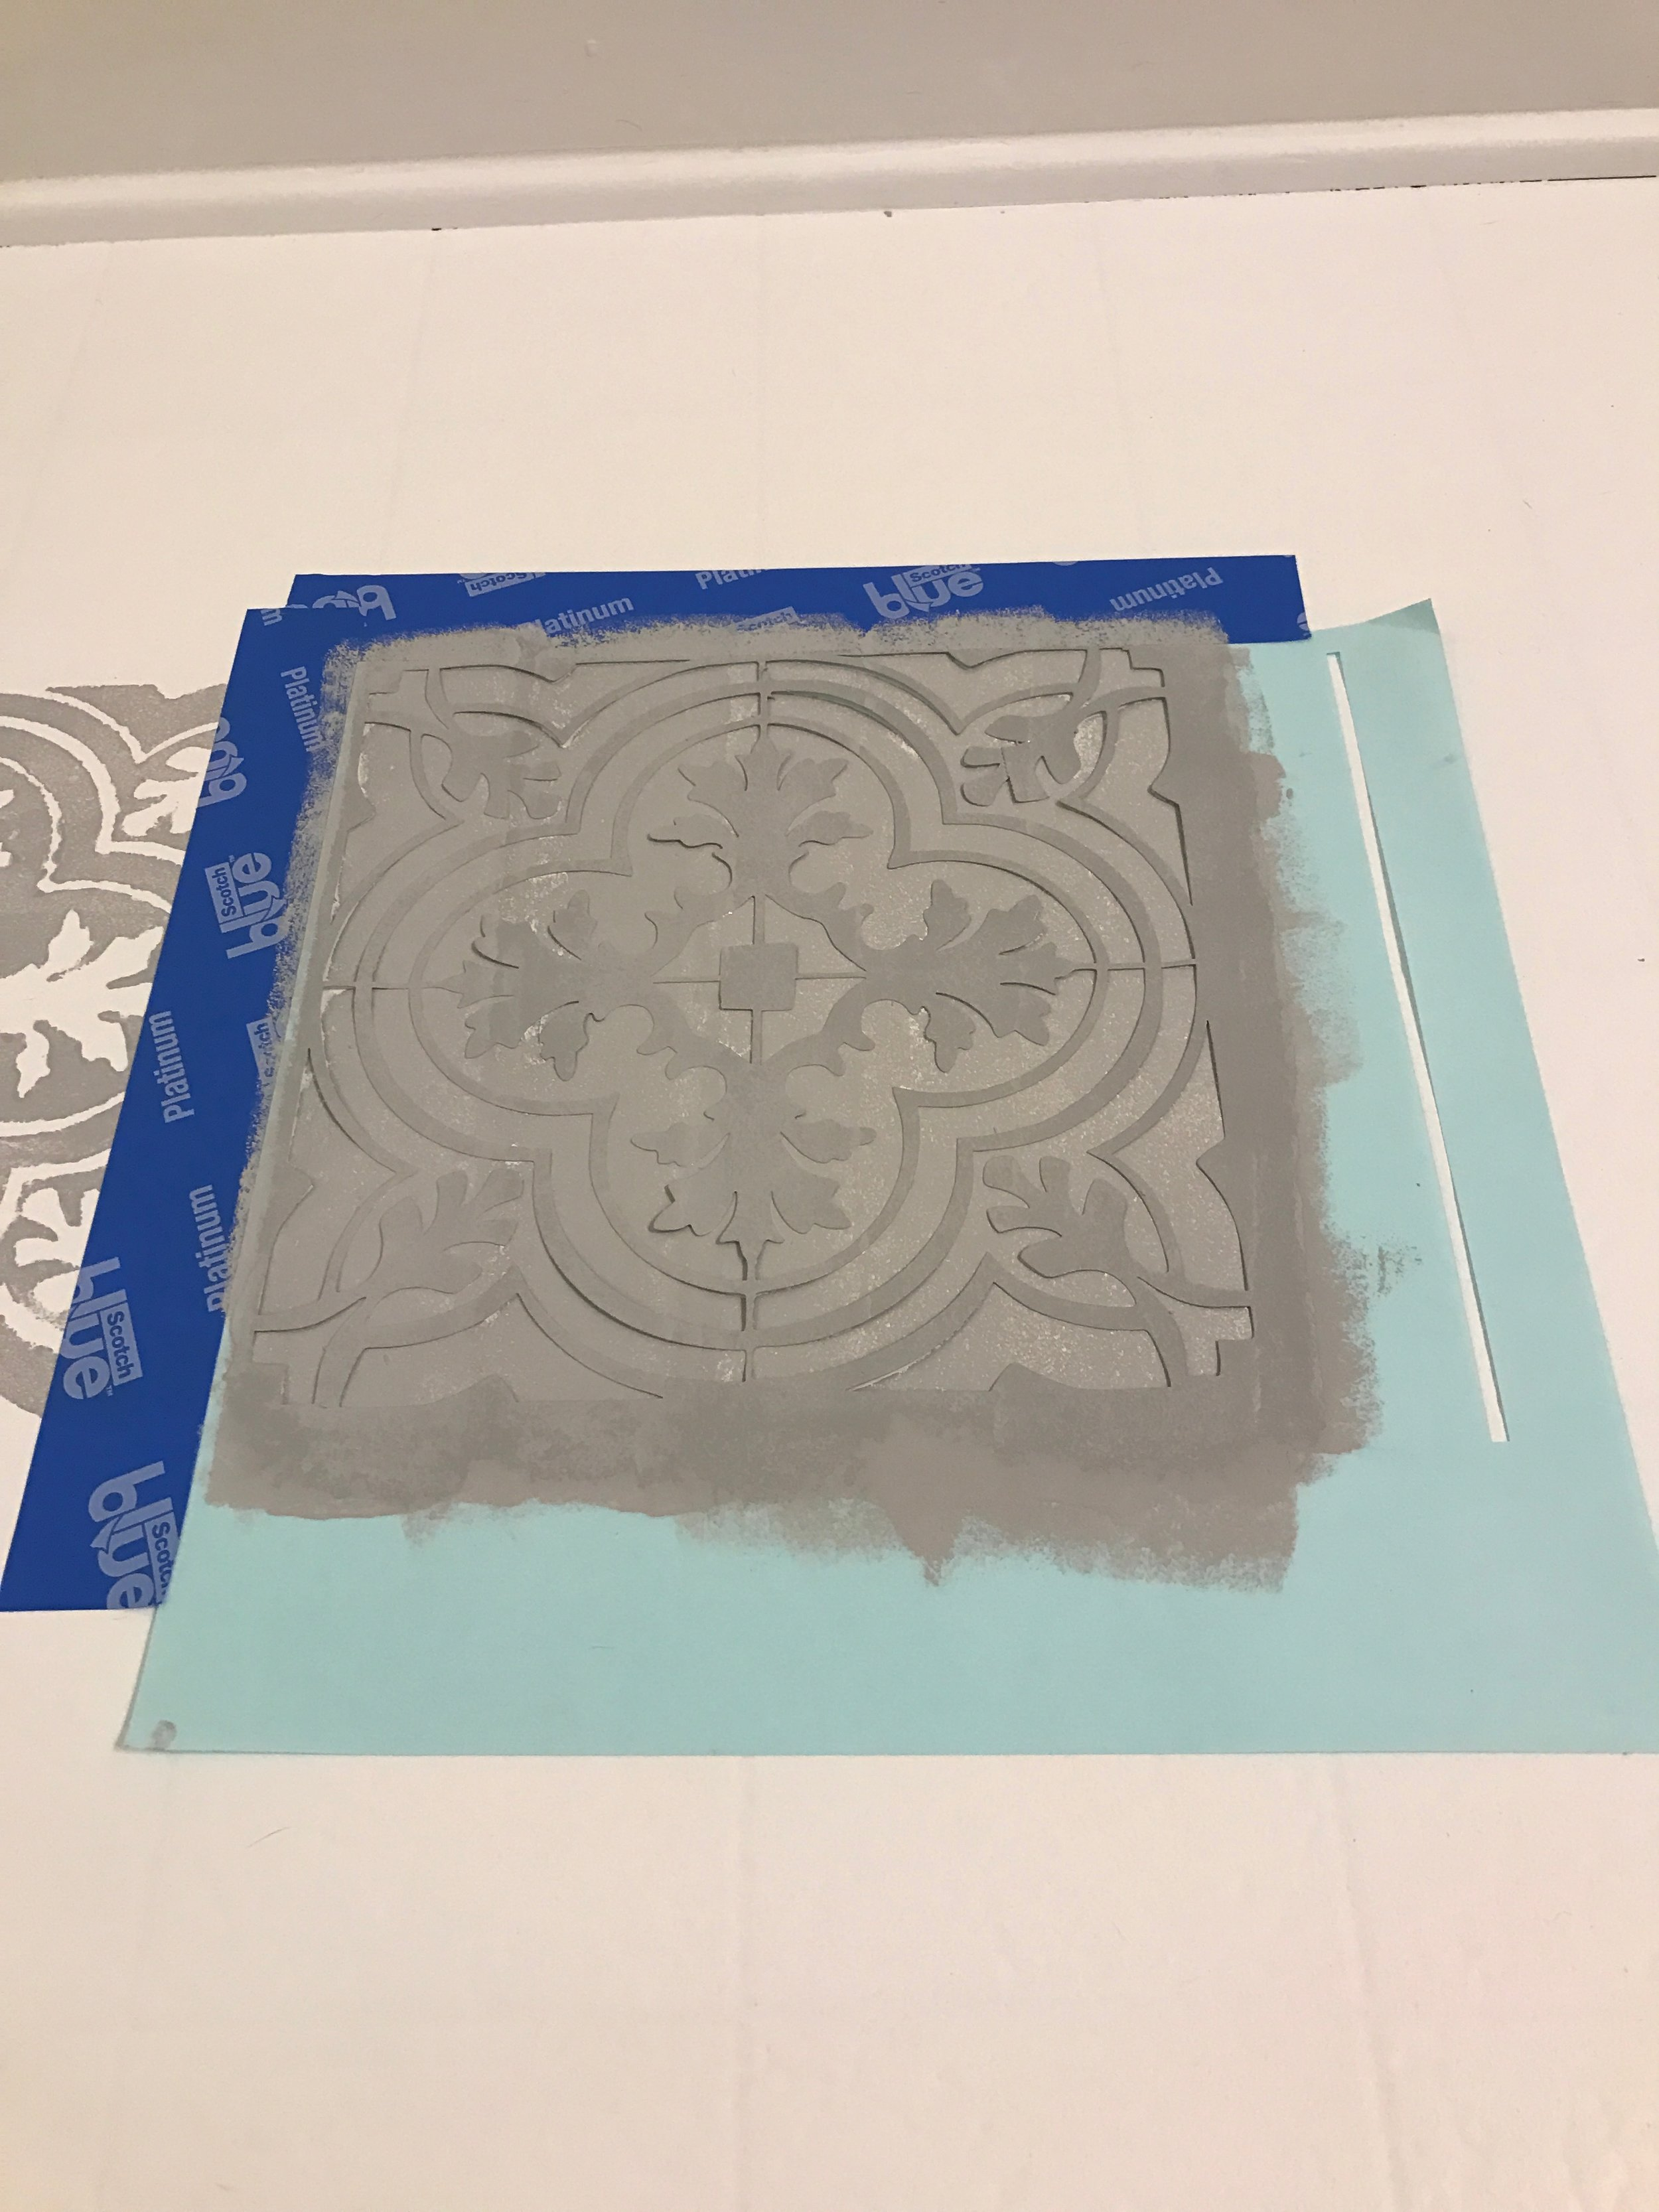 How to Paint Your Linoleum or Tile Floors to Look Like Patterned Cement Tile- Free Stencil Download for you Silhouette Cameo Machine